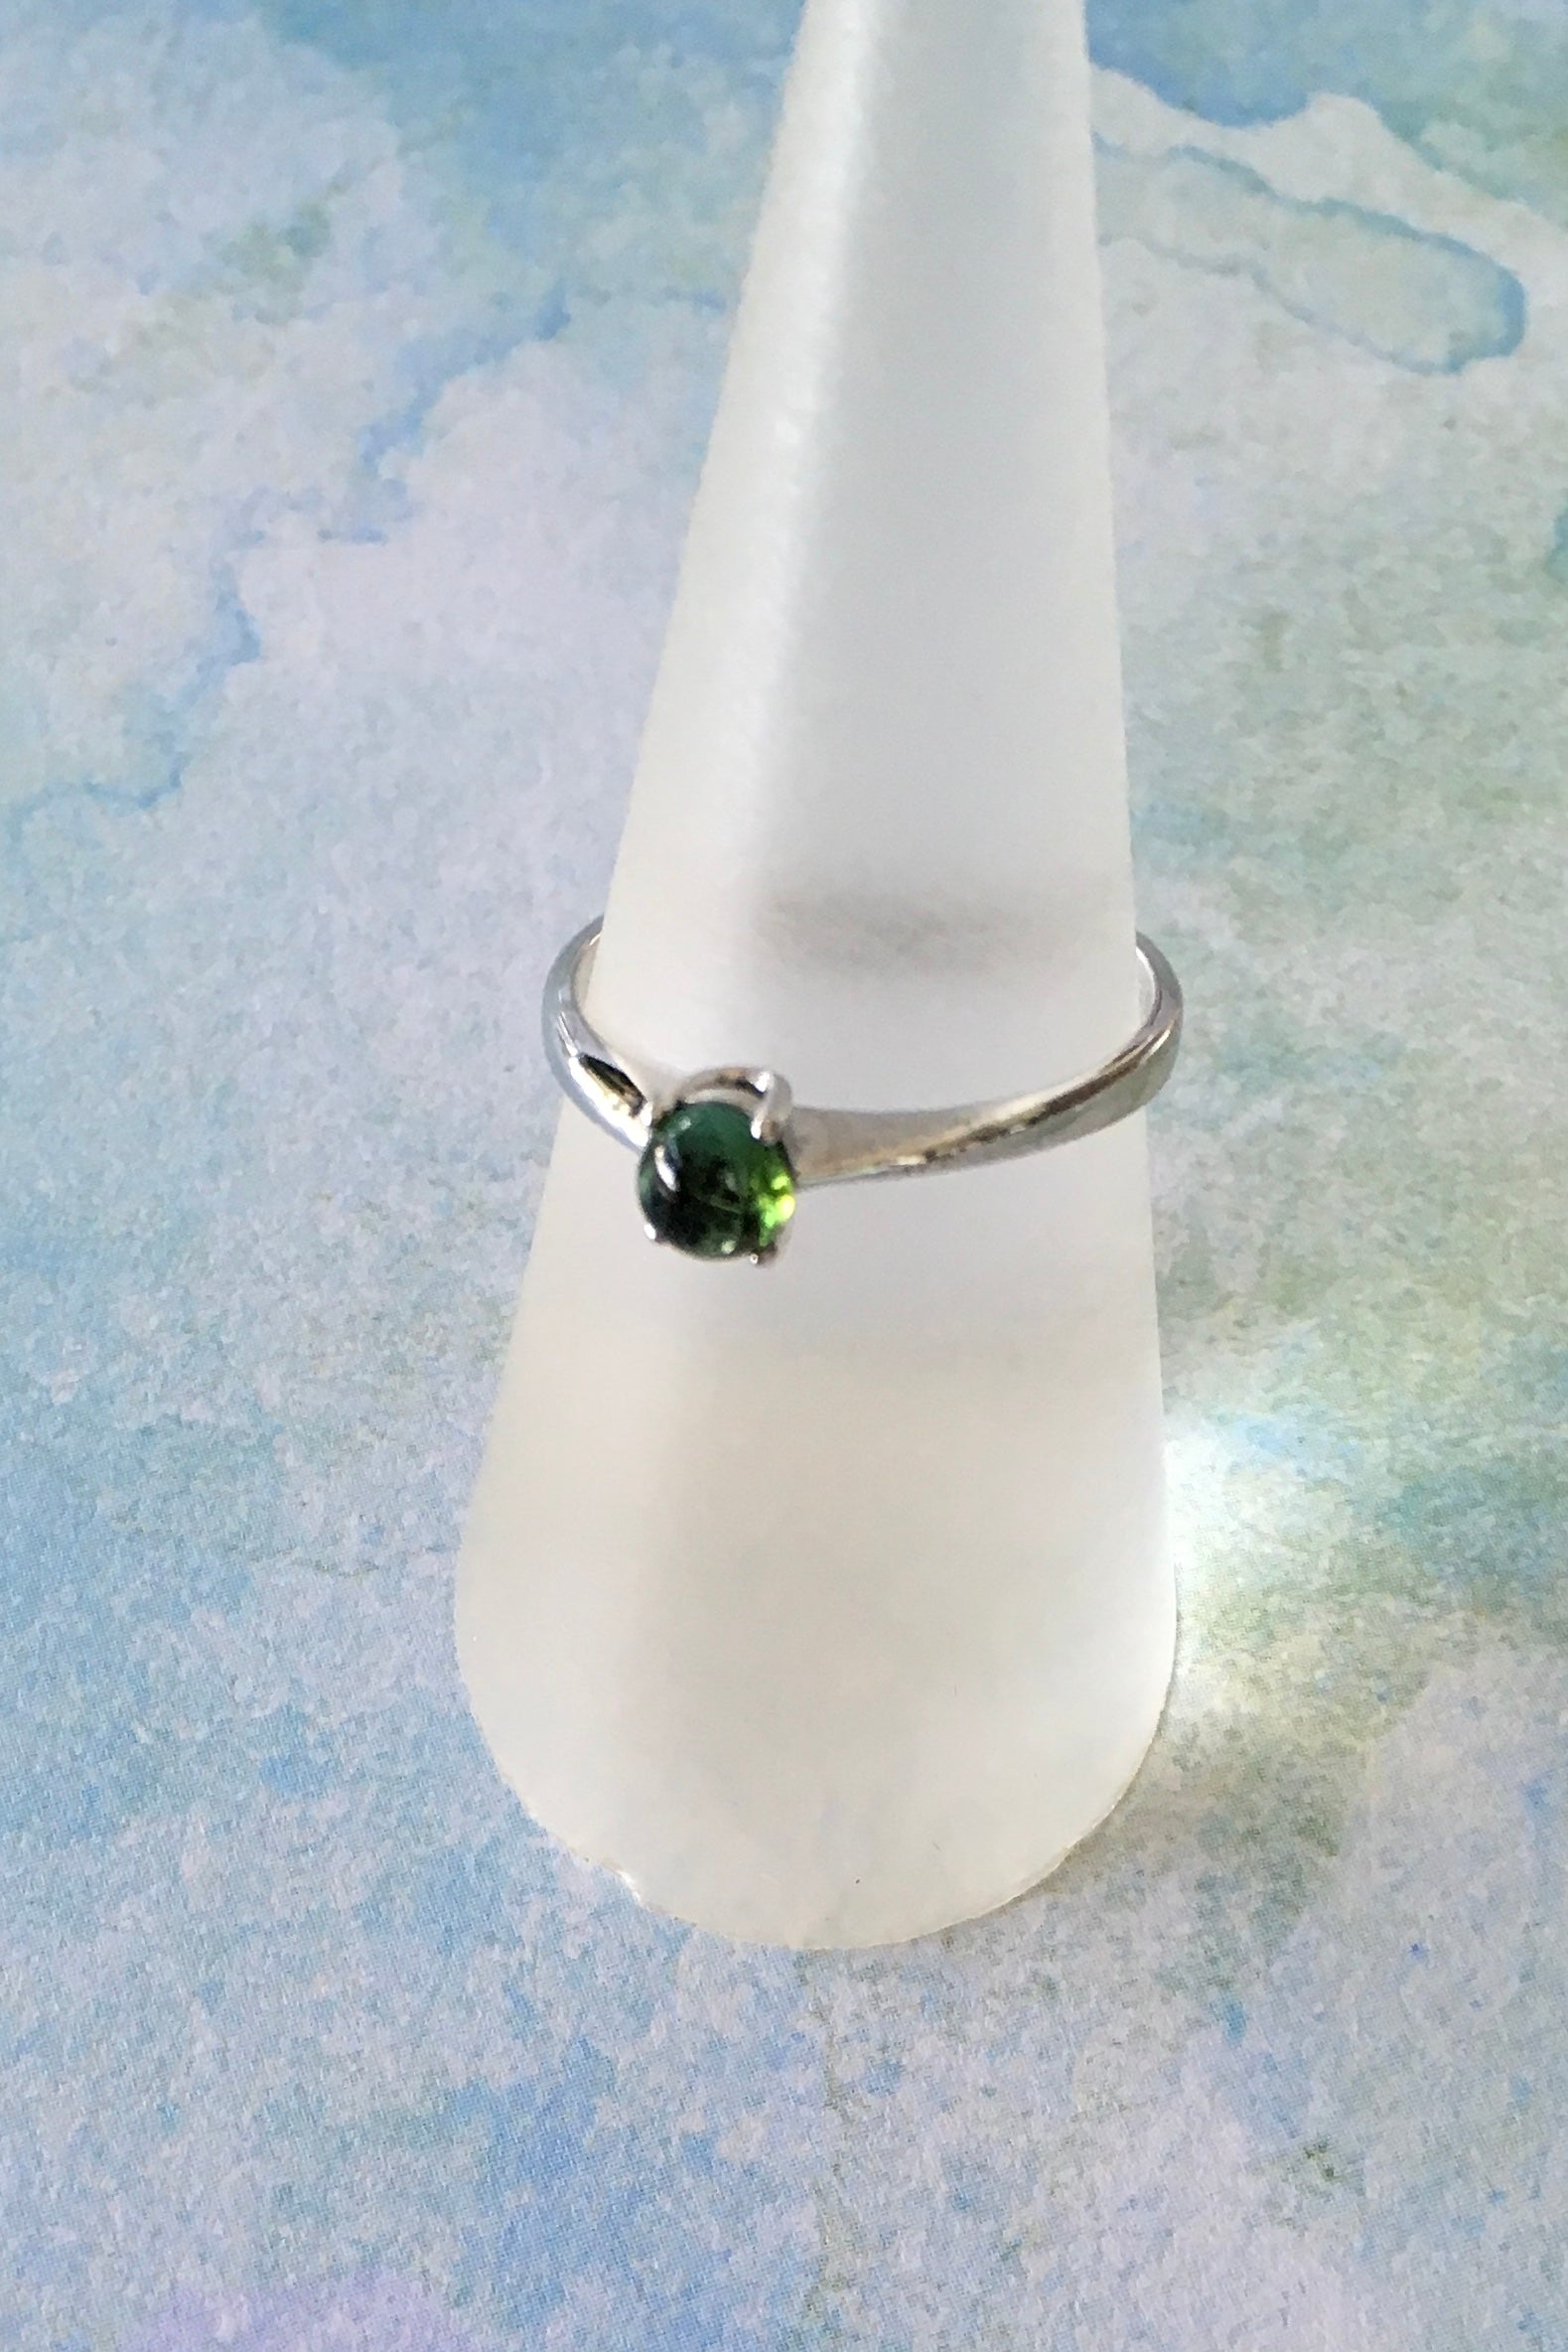 Tourmaline gemstone is set in a 925 silver ring,